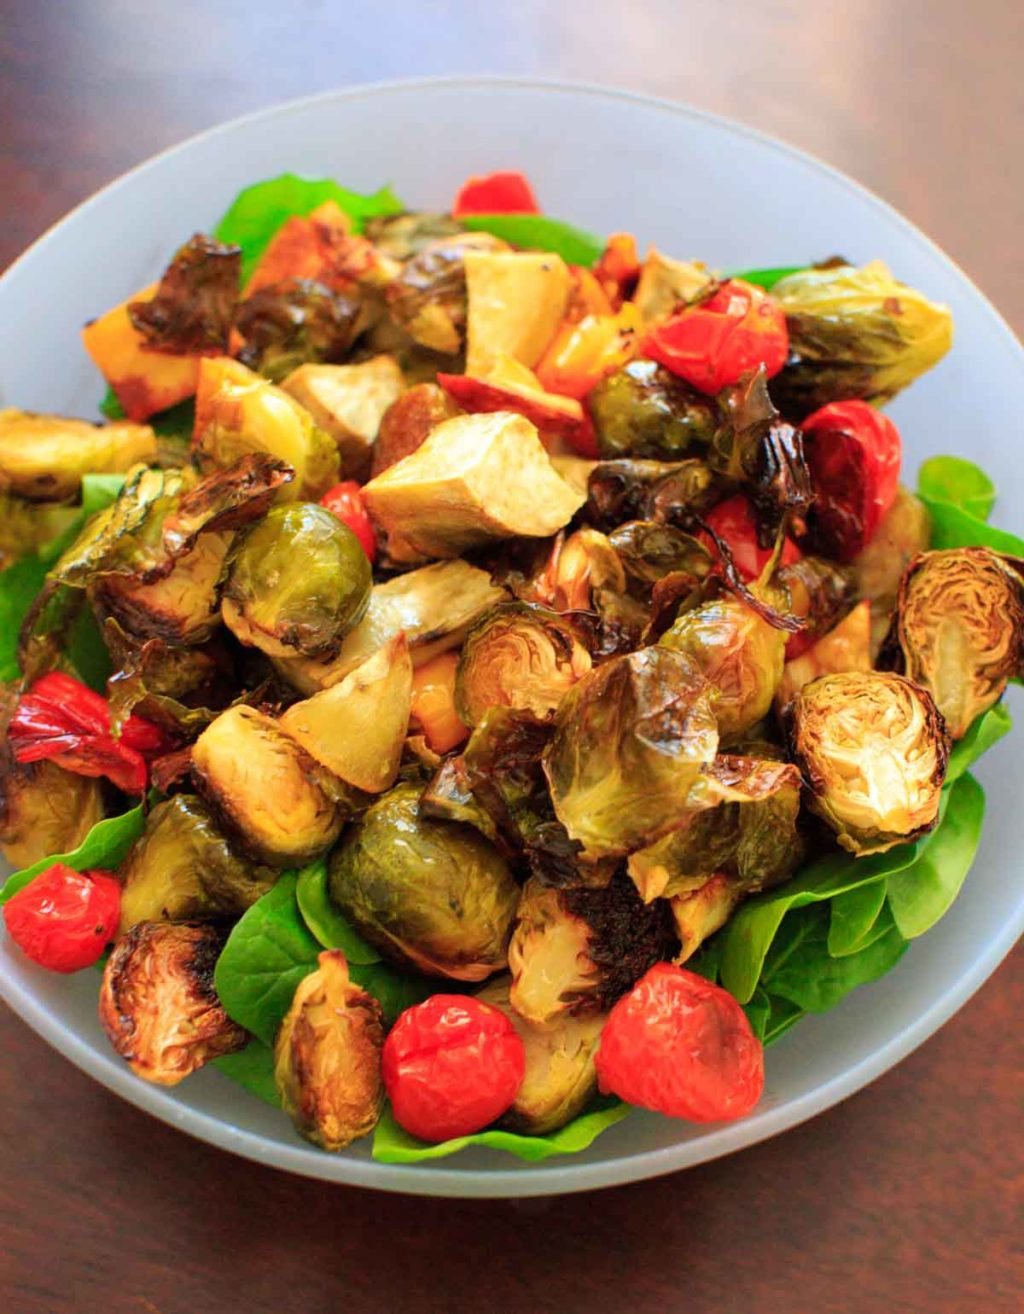 Vegetarian Spinach Salad Recipes  Leftover Veggie Salad Roasted Ve ables on Spinach with